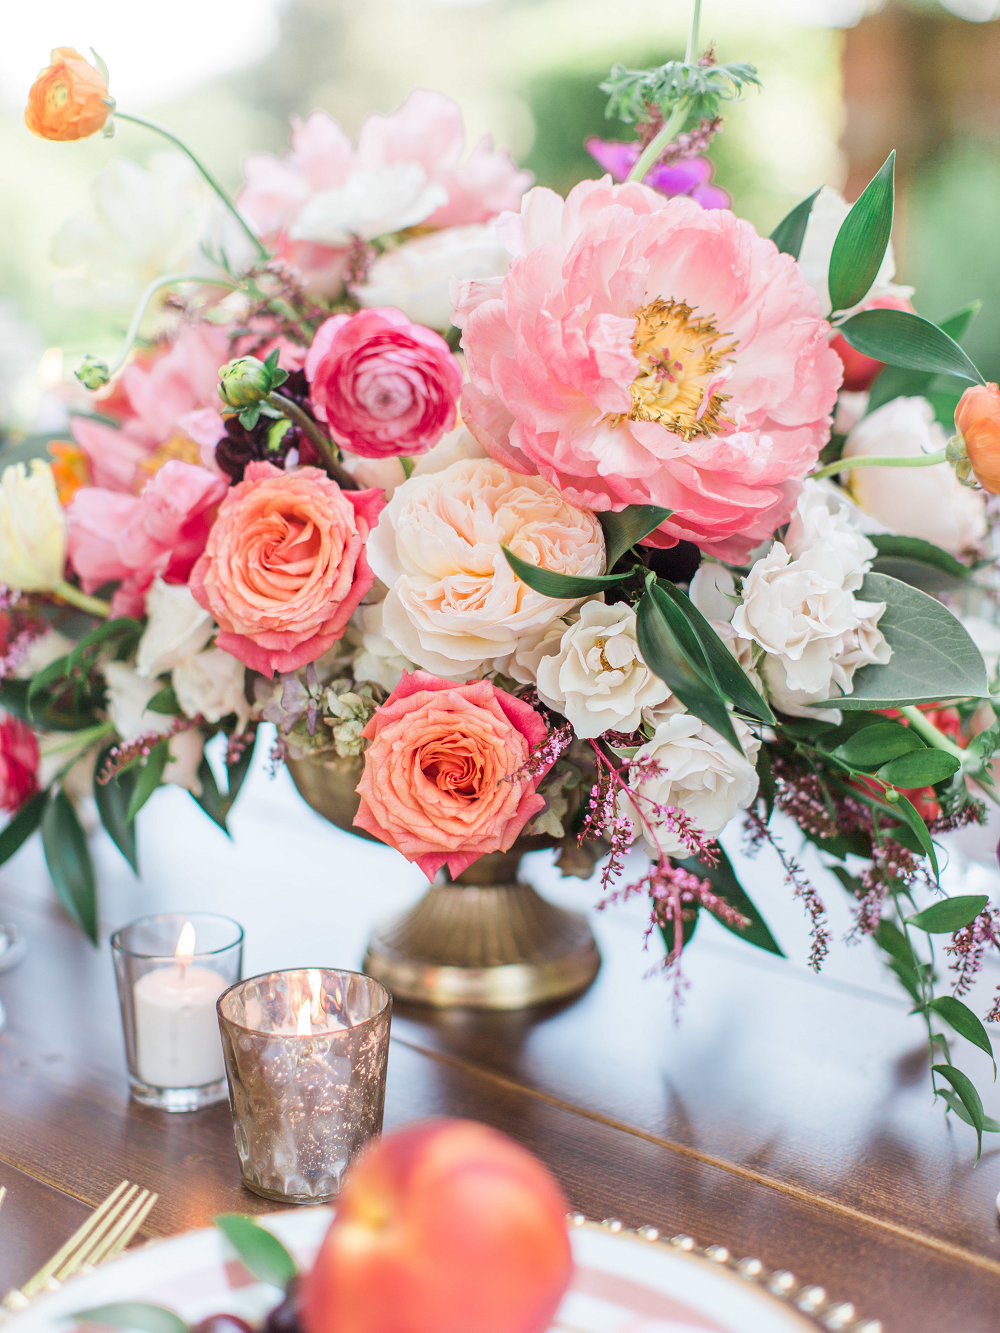 Whimsical Summer Wedding Styled Shoot at Henderson Castle Featured in WeddingDay Magazine Peach and Blush Flowers